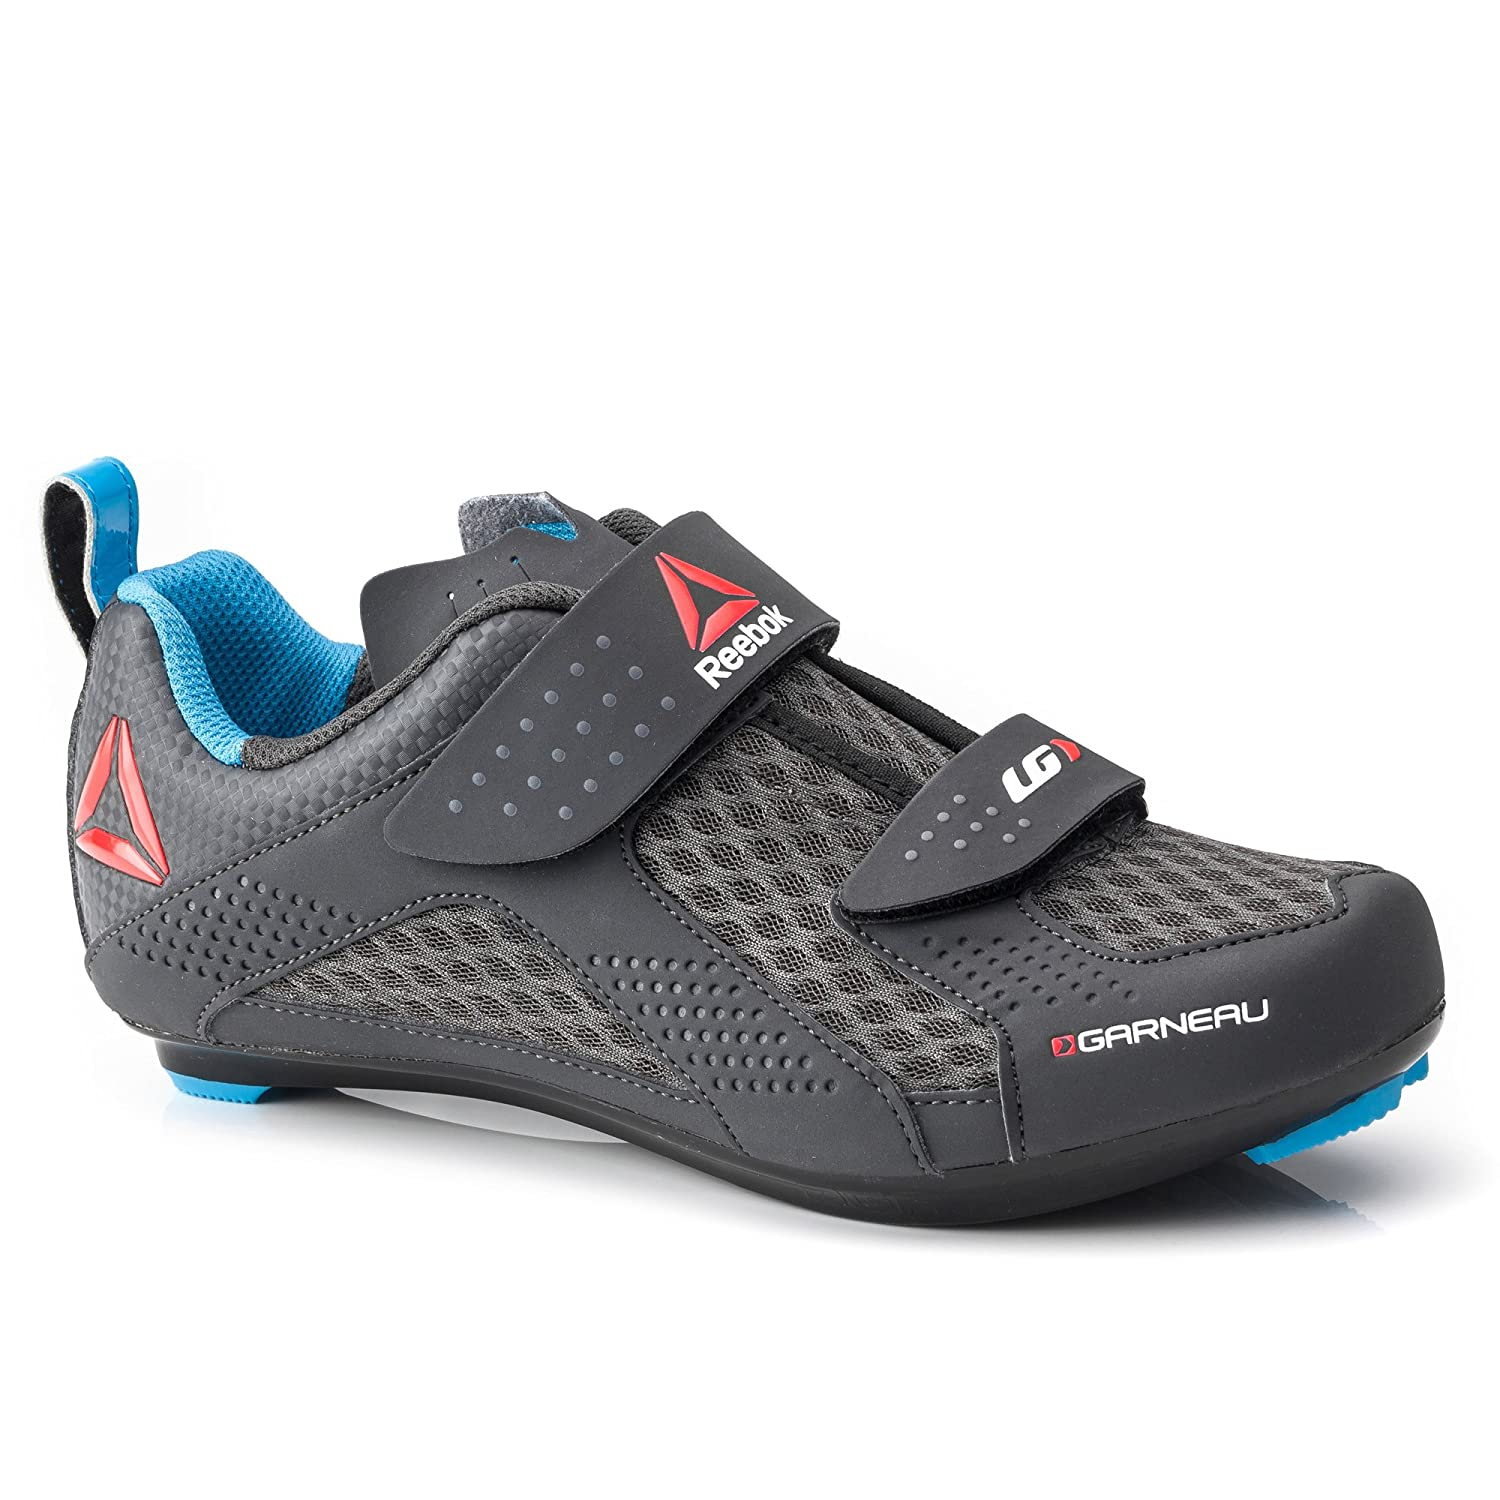 Louis Garneau Women's Actifly Indoor Cycling Shoes, A Collaboration with Reebok B071QXSWYZ 41